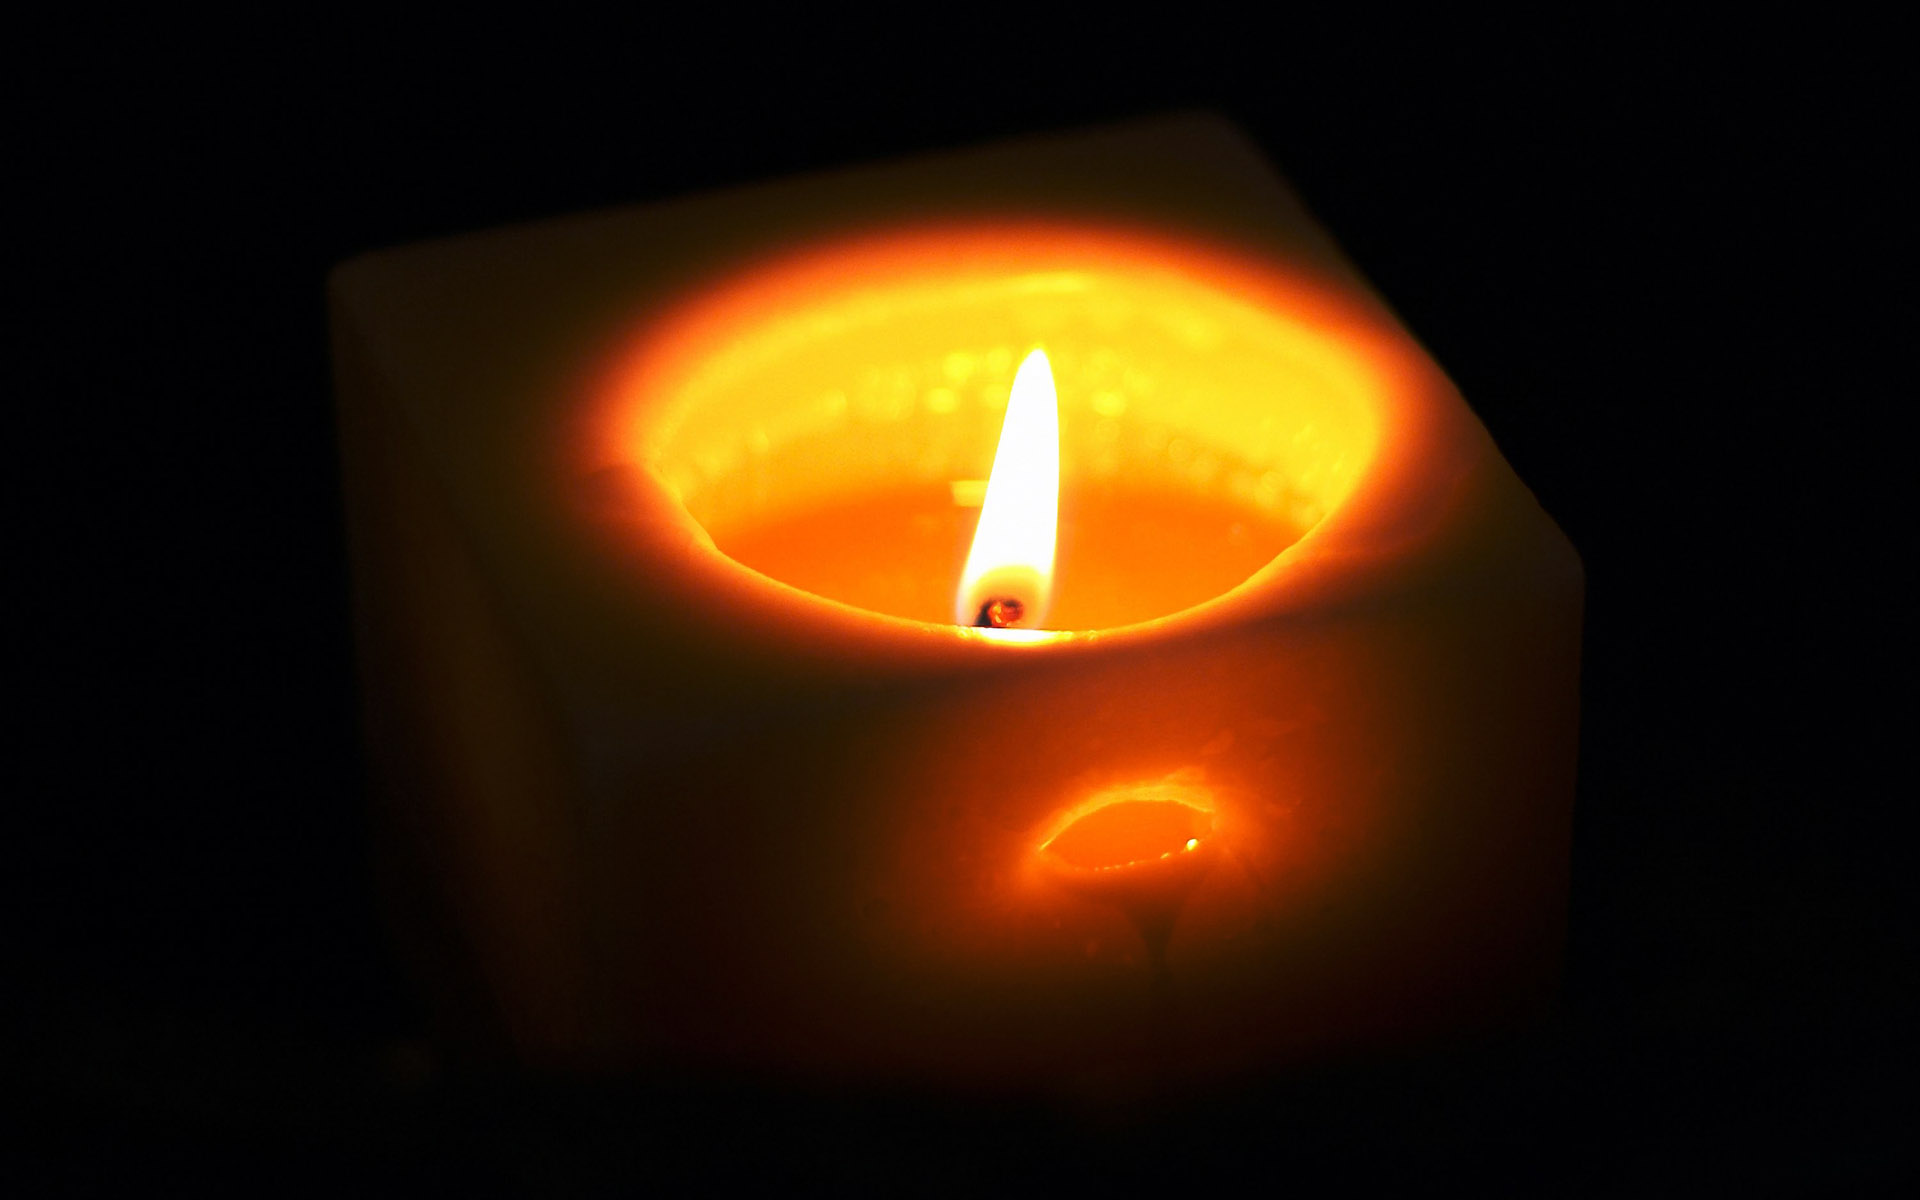 Candle wallpaper 2606